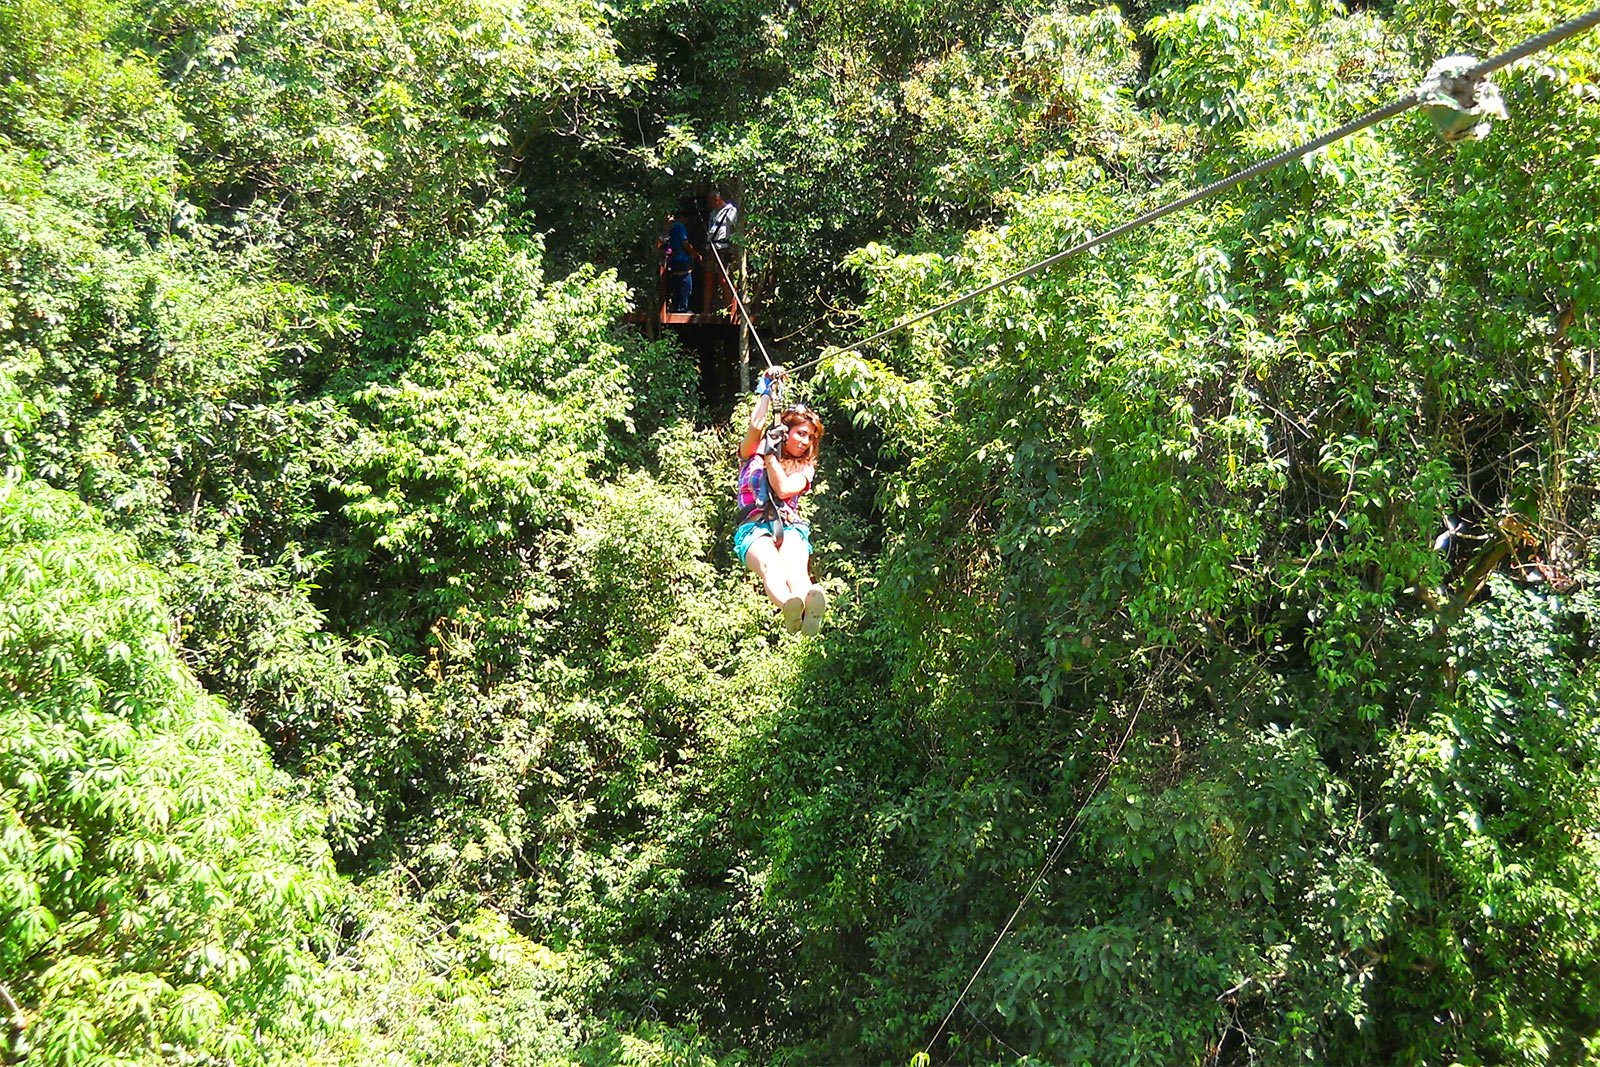 How to fly through the jungle on a cable on Koh Samui